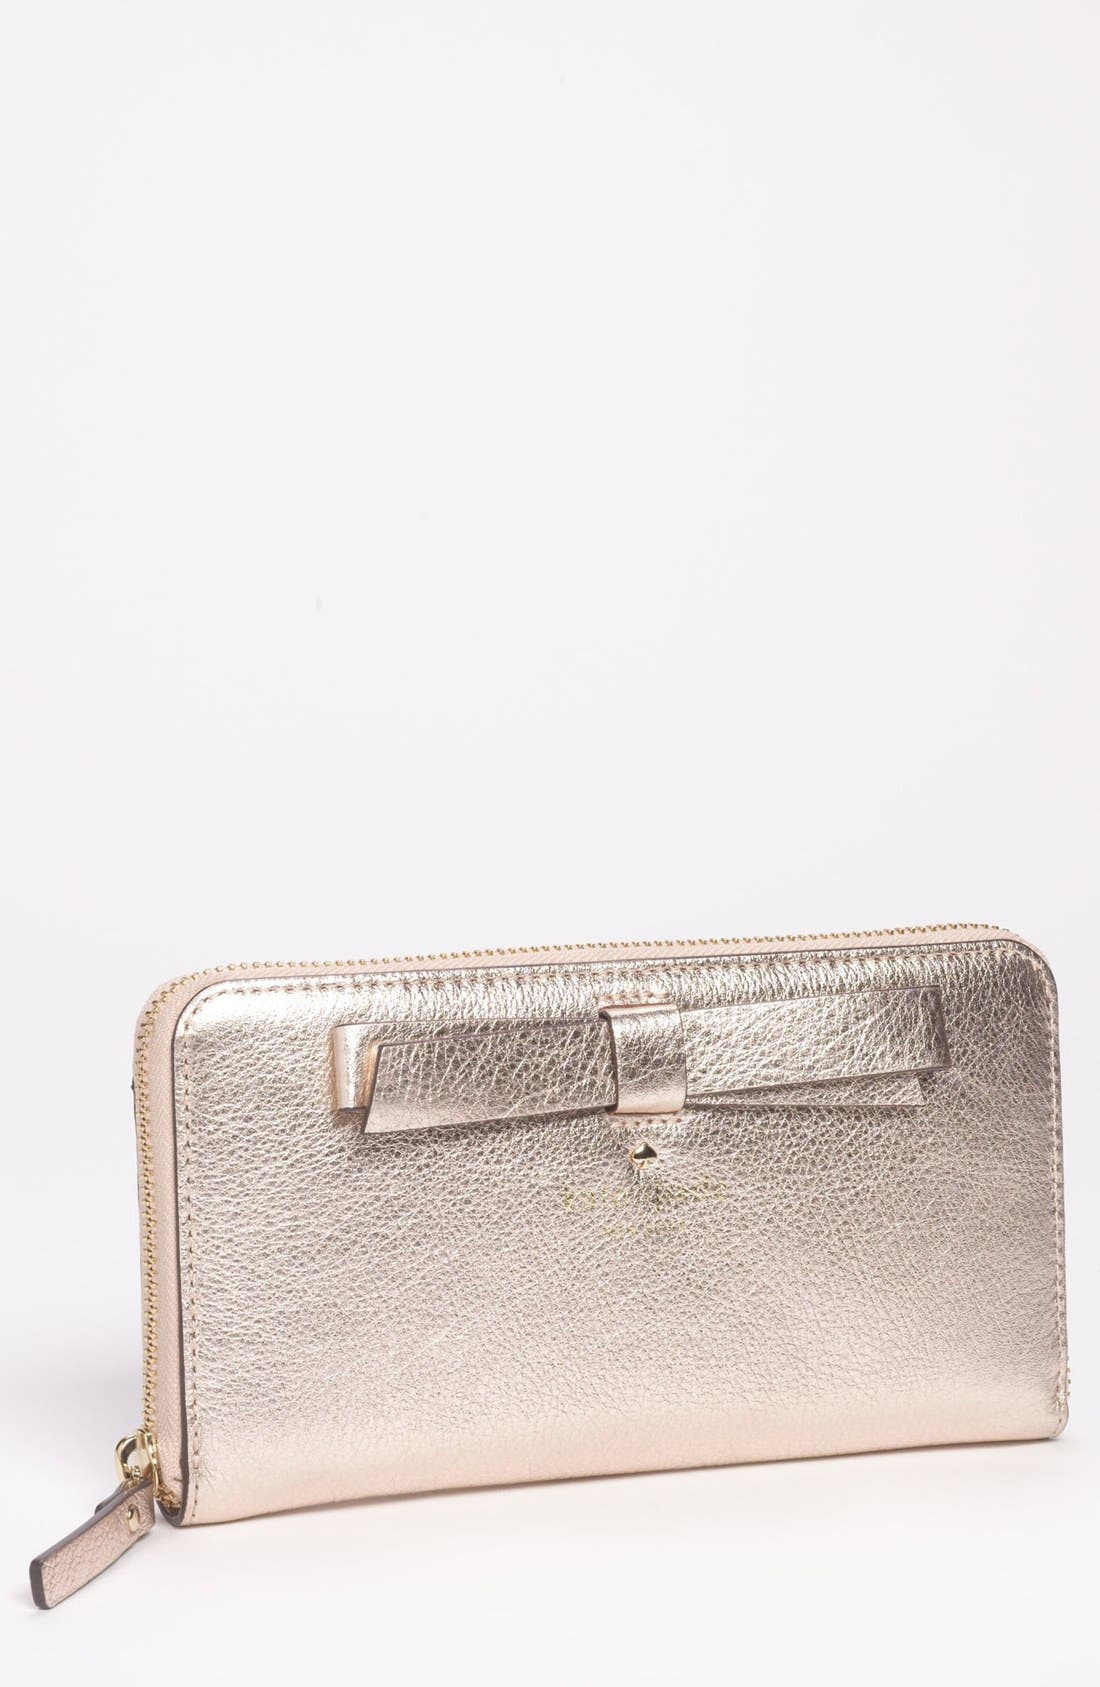 Main Image - kate spade new york 'hancock park - lacey' leather zip wallet